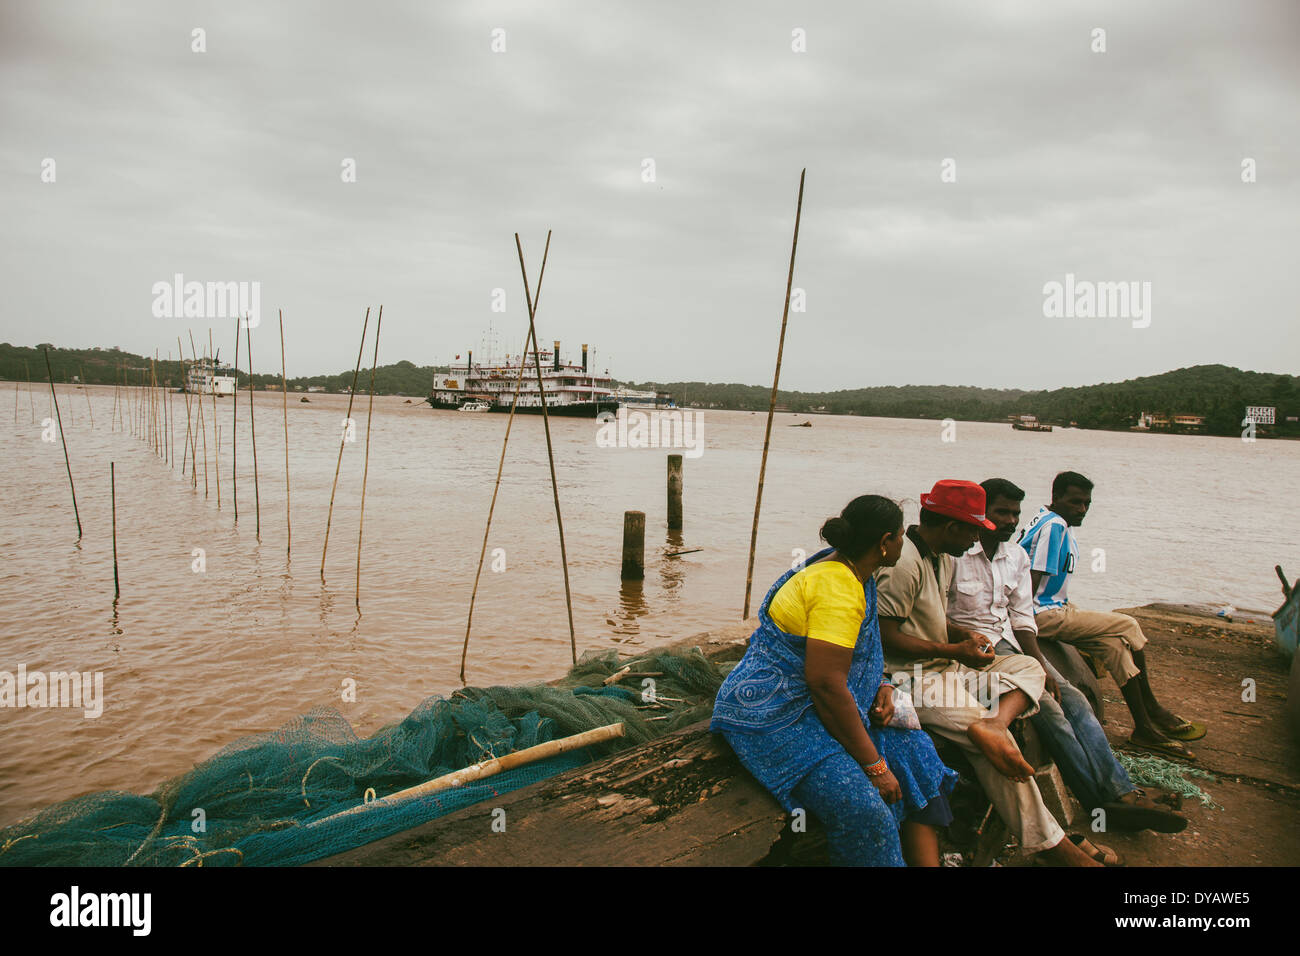 Locals enjoying near the ferry bank in Goa. - Stock Image